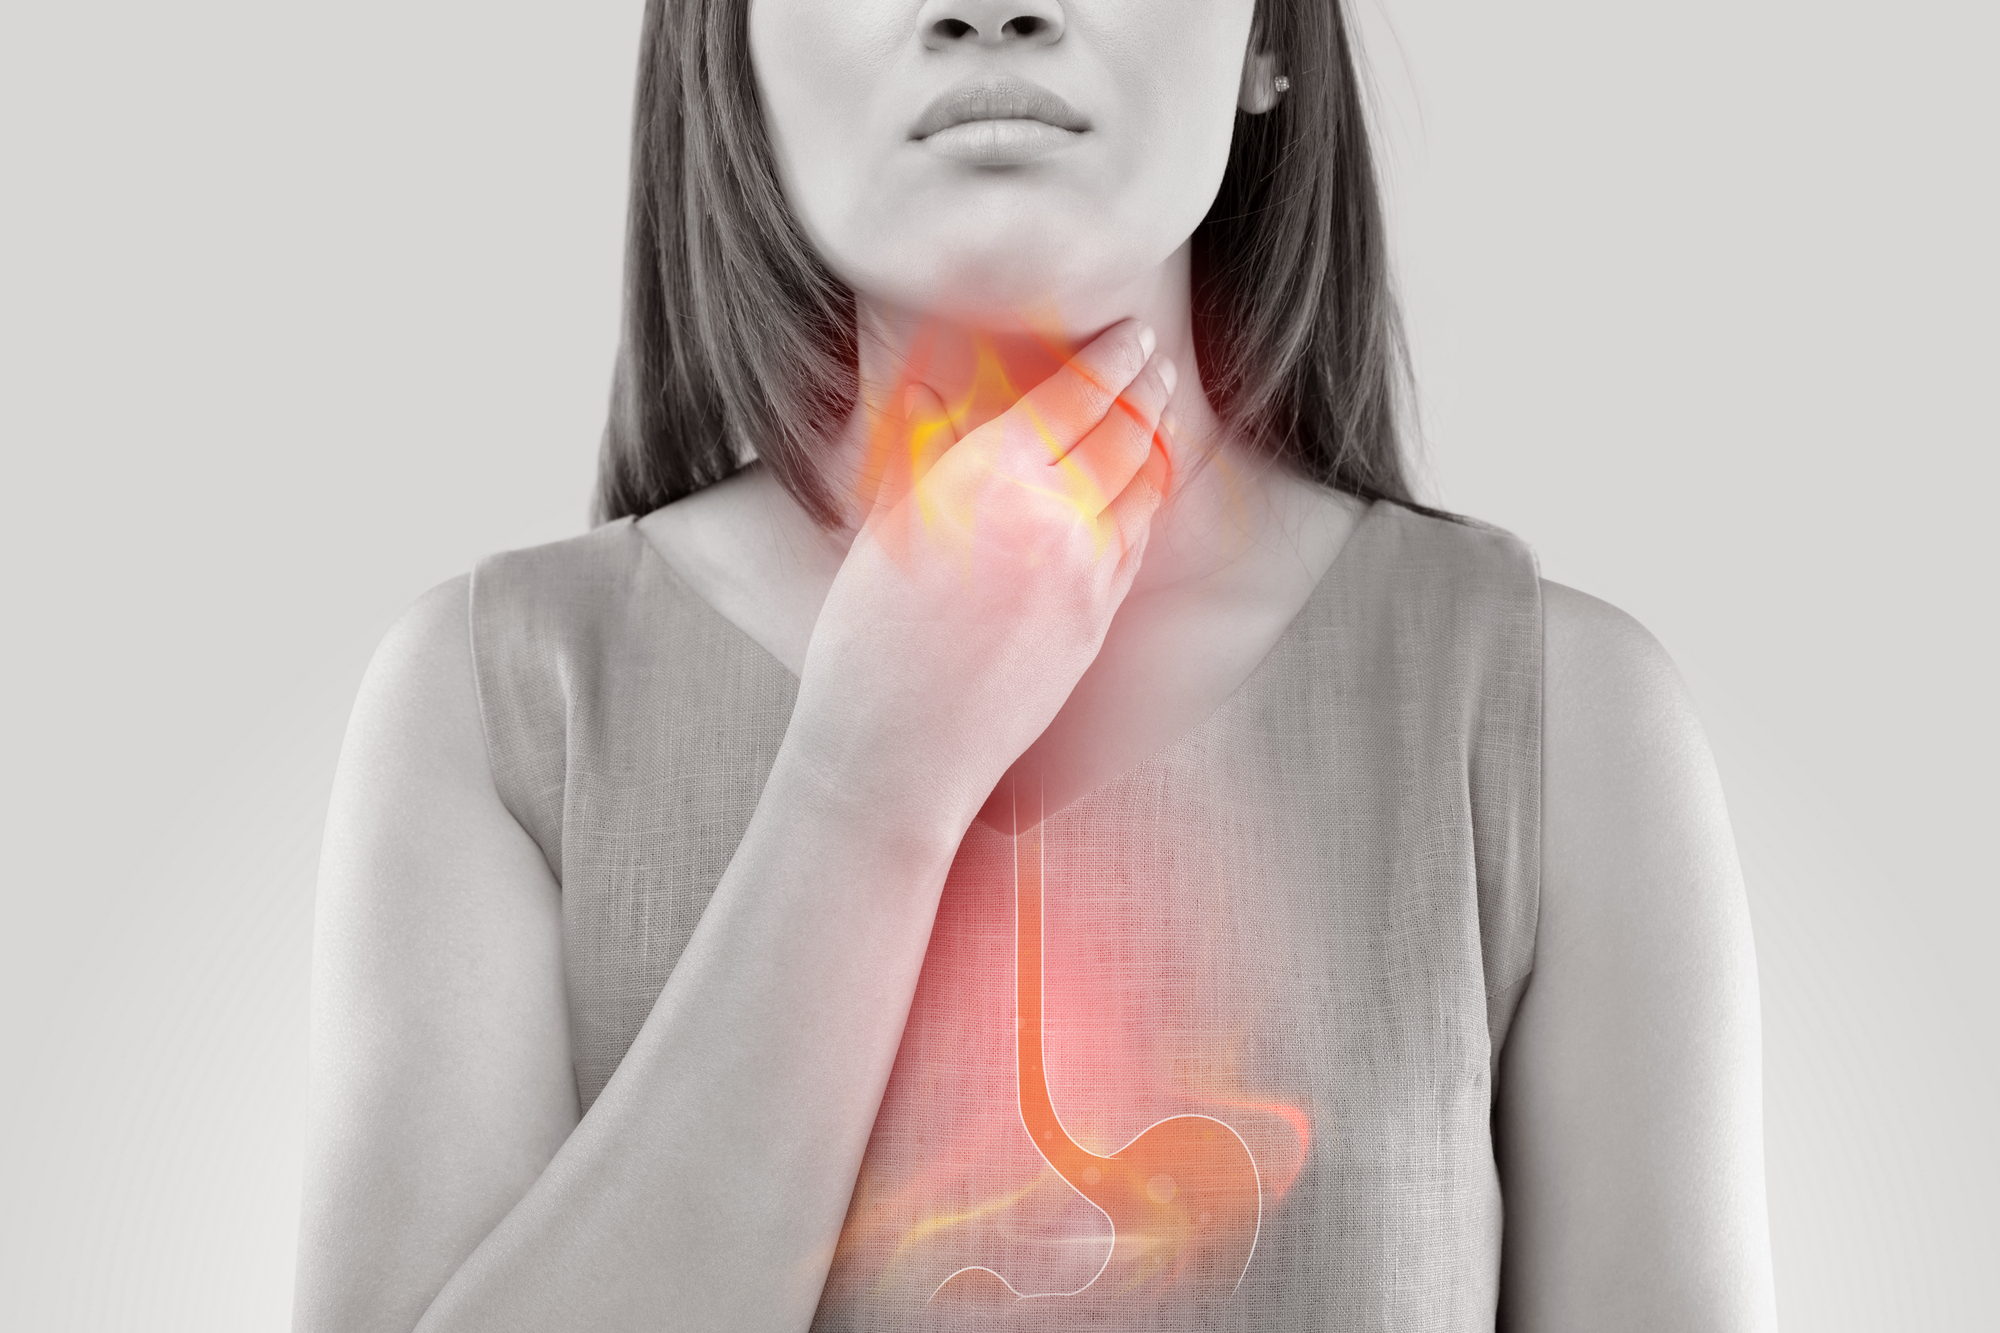 Acid reflux (or Gastroesophageal reflux disease - GERD) s a condition where acid flows from the stomach into the esophagus.